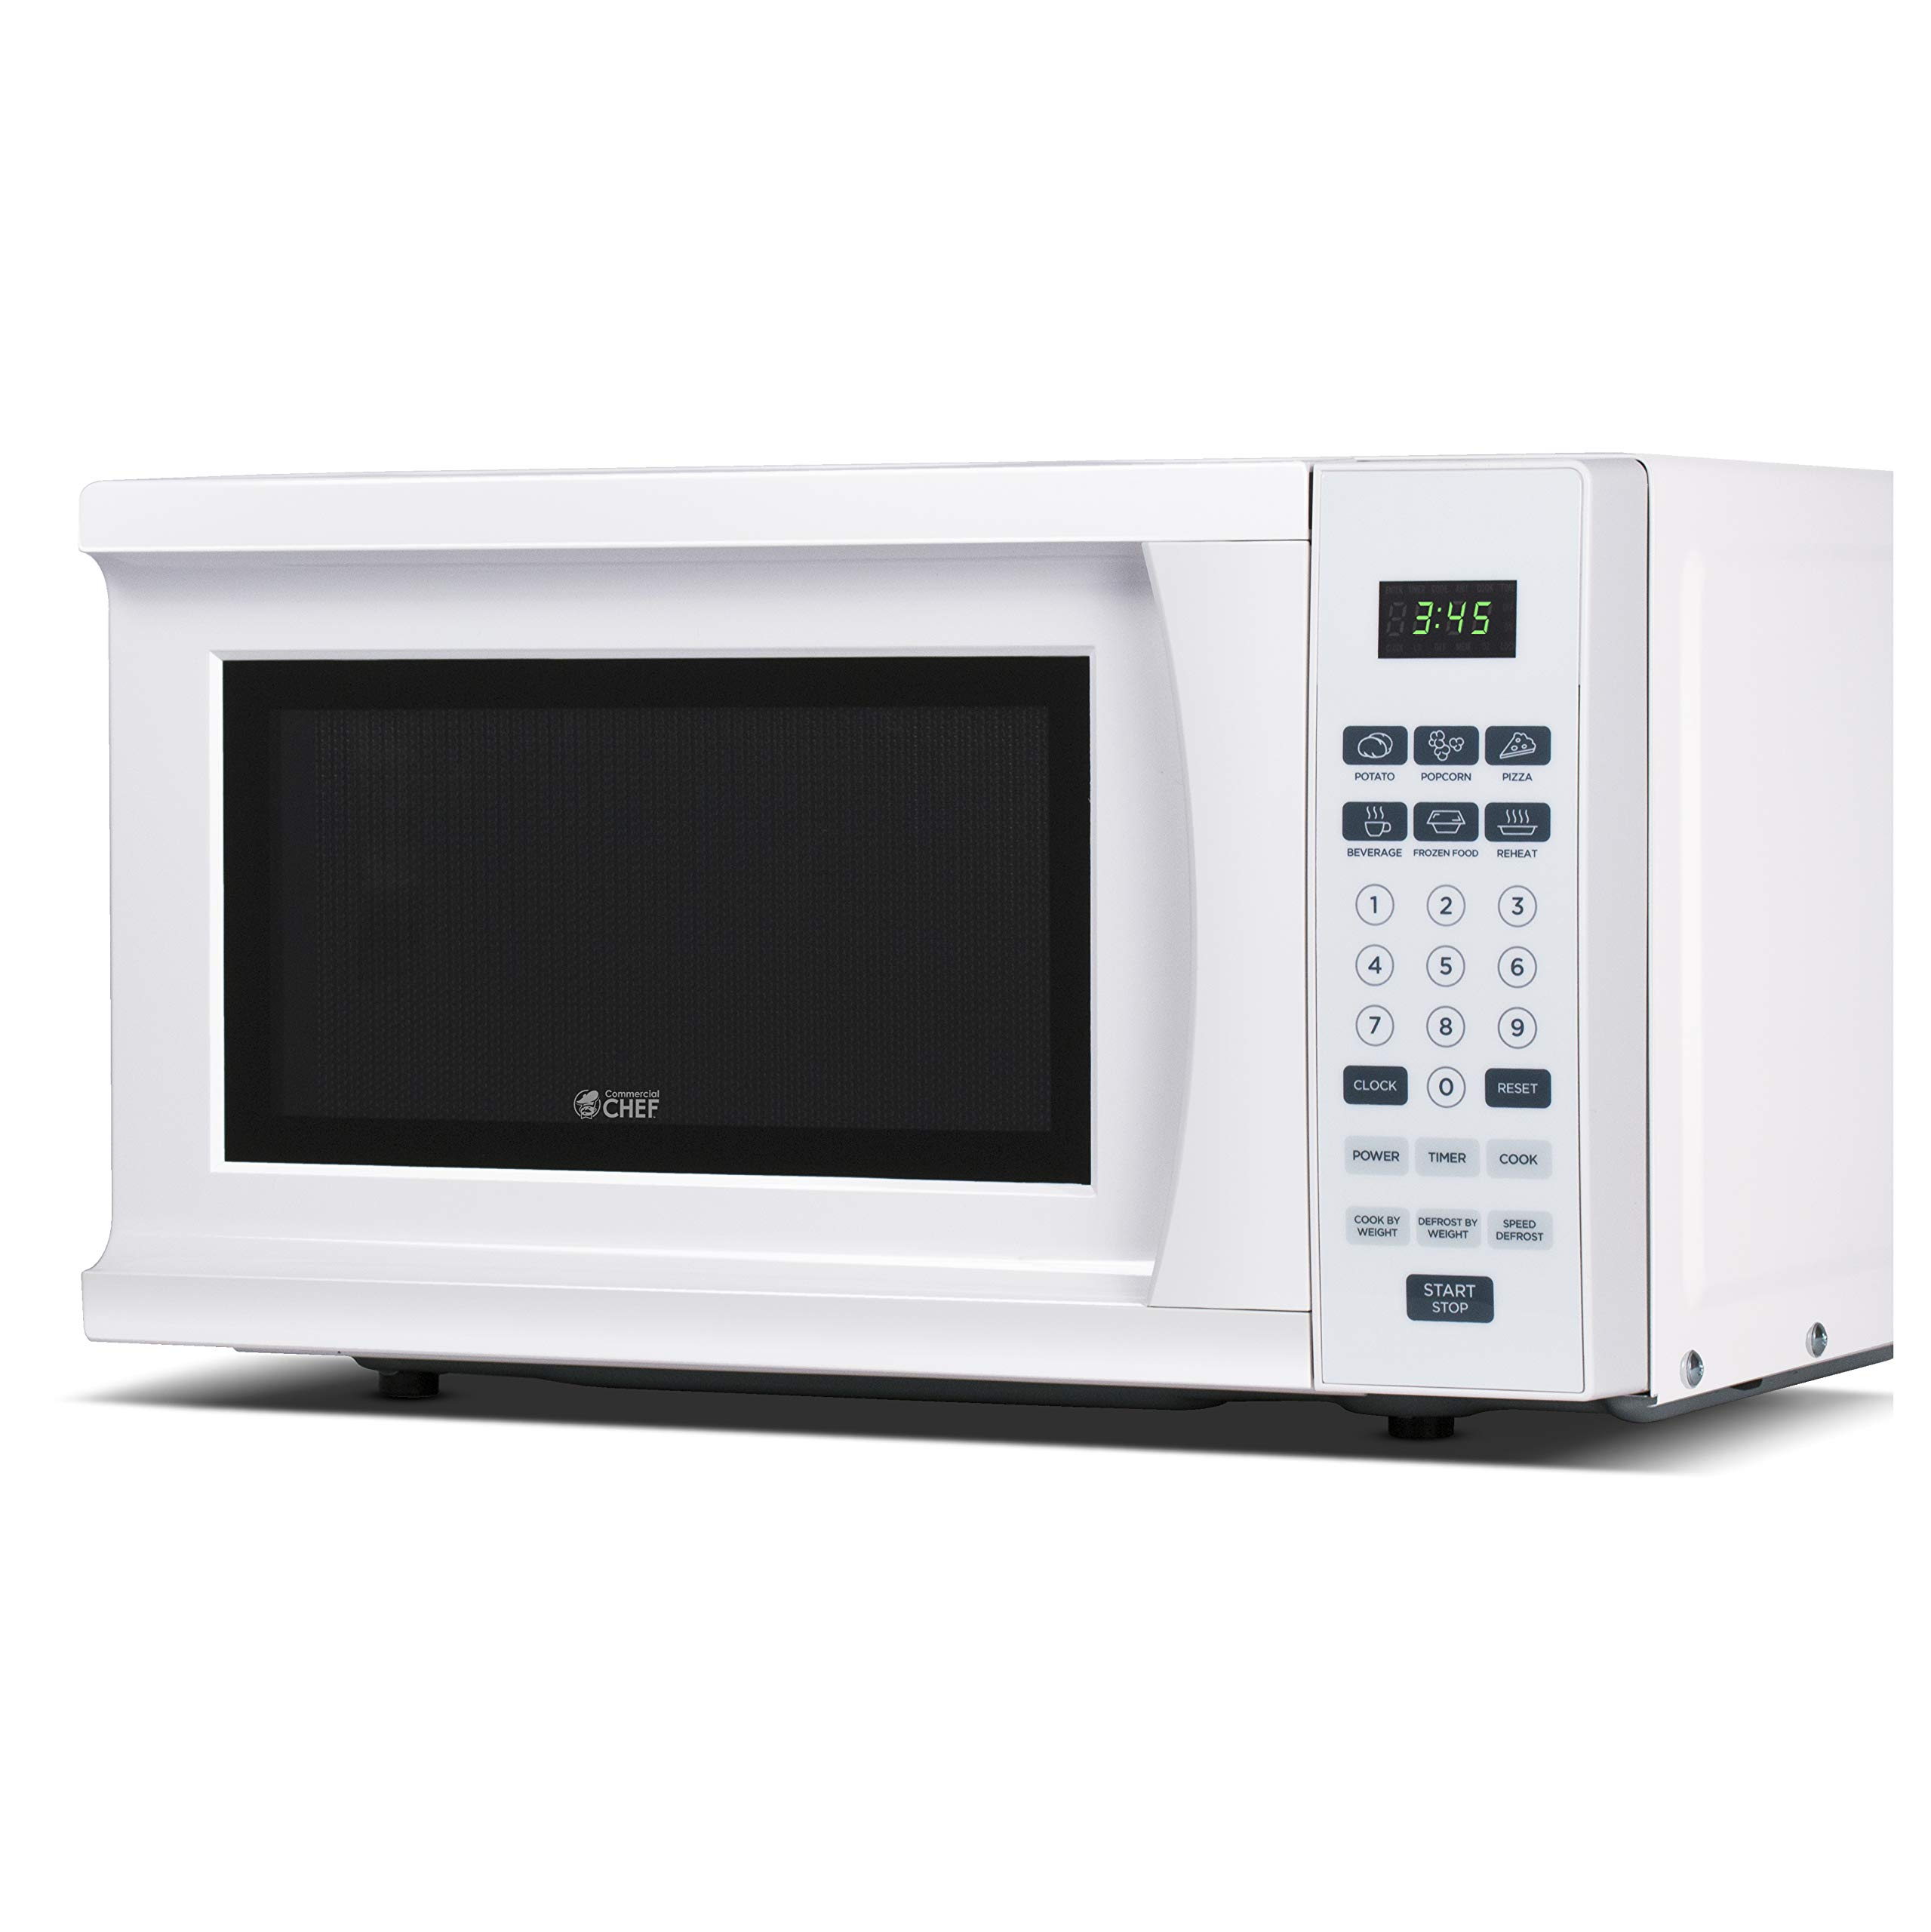 Commercial Chef CHM770W 700 Watt Counter Top Microwave Oven, 0.7 Cubic Feet, White Cabinet by Westinghouse